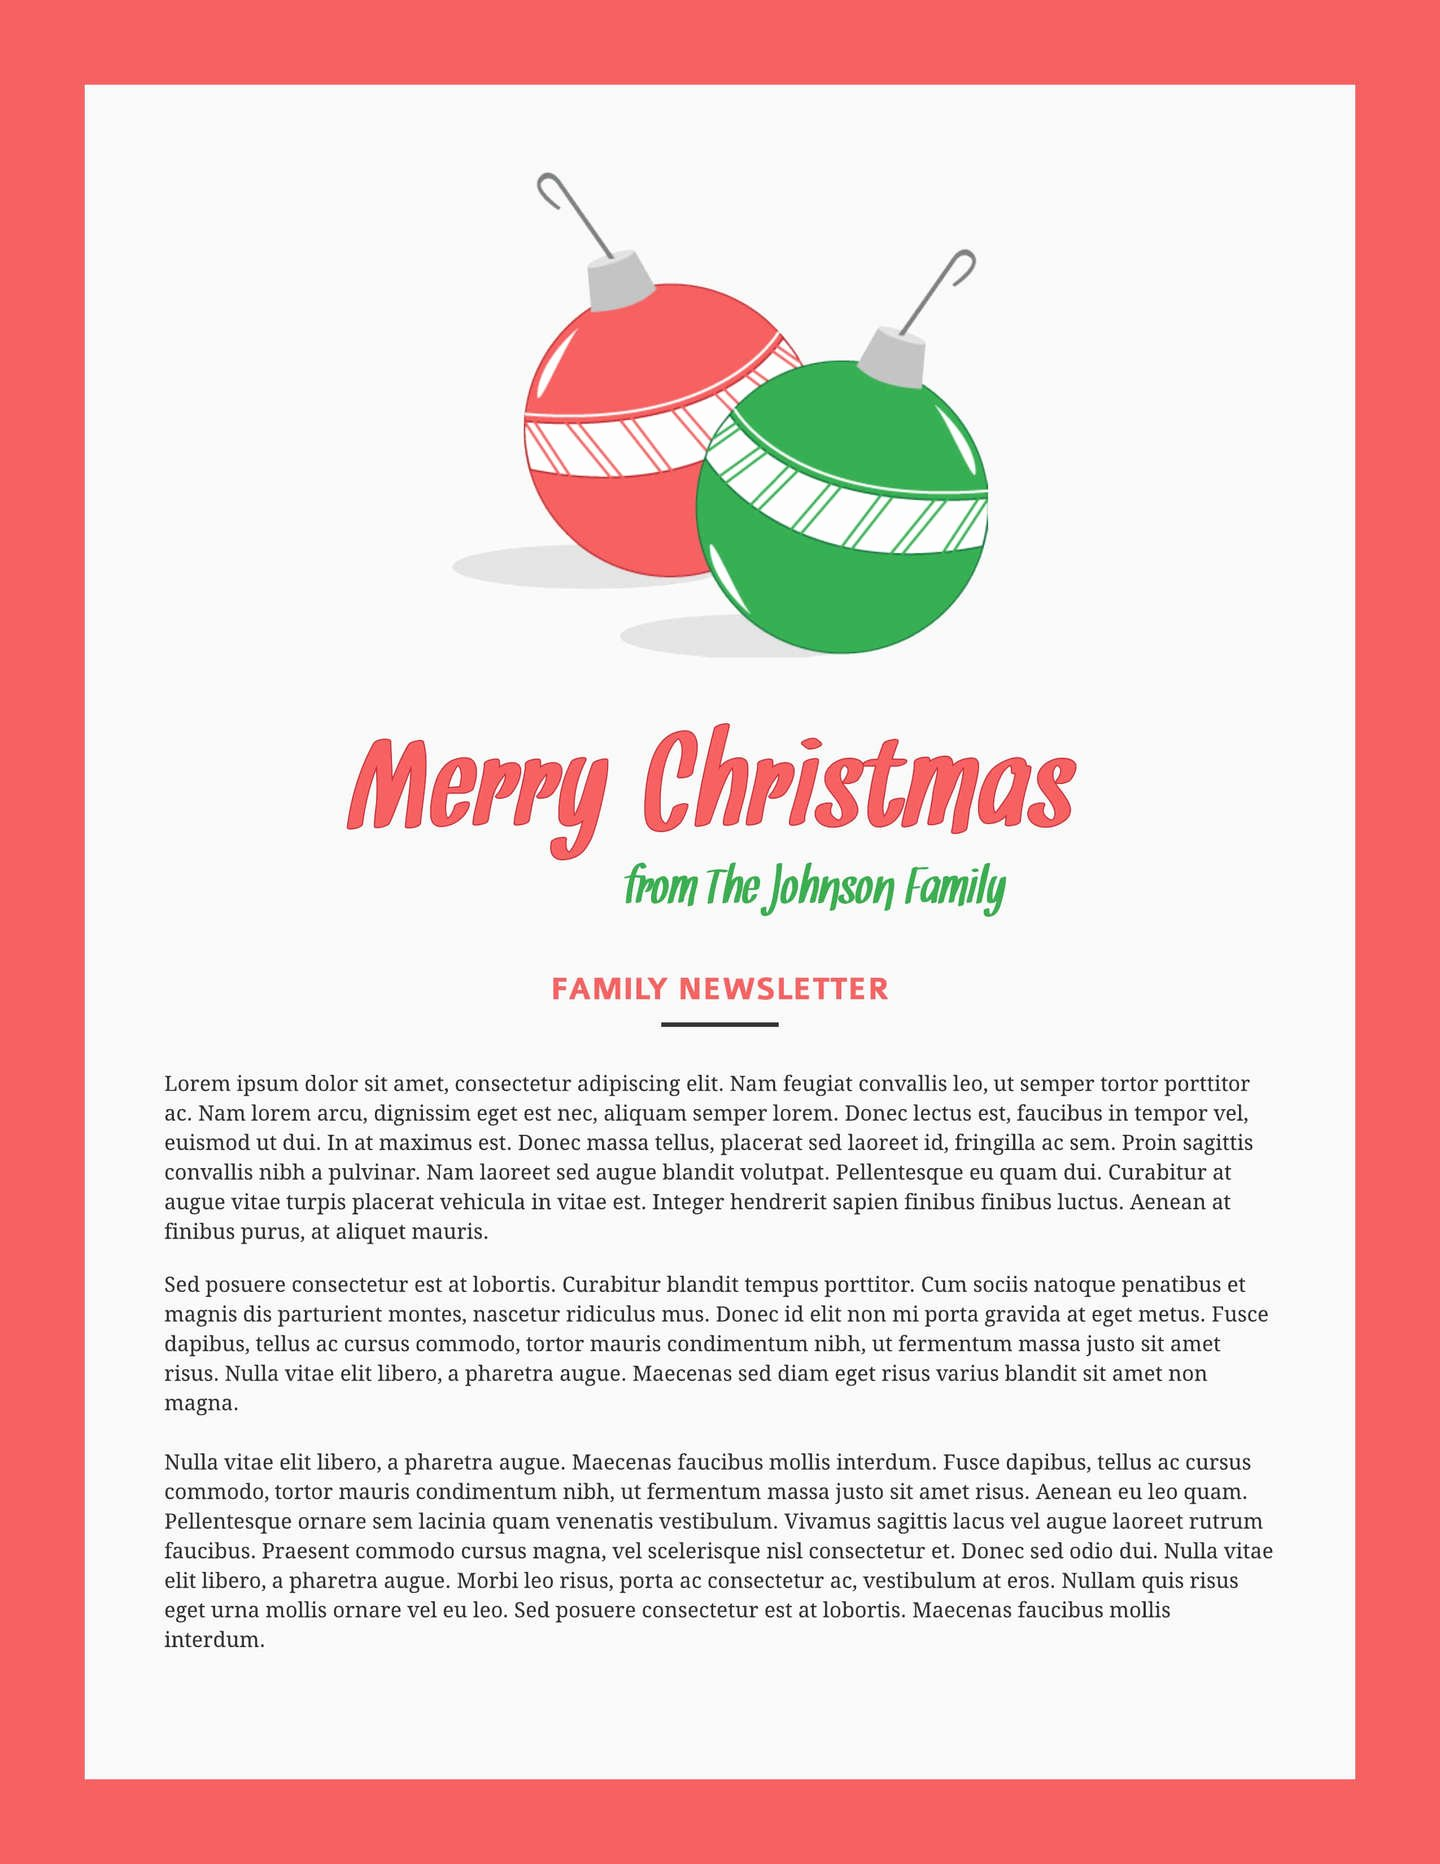 Free Holiday Newsletter Templates New 6 Free Christmas Templates & Examples Lucidpress